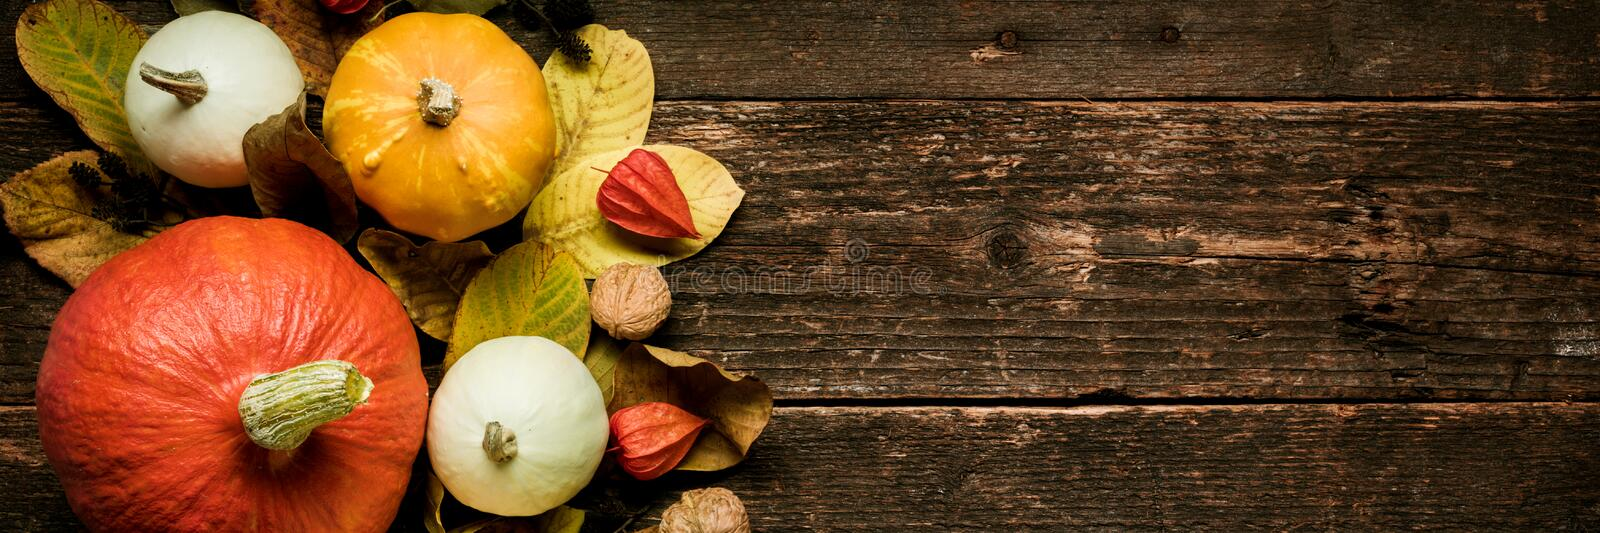 Autumn Harvest and Holiday still life. Happy Thanksgiving Banner. Selection of various pumpkins on dark wooden background. royalty free stock photography